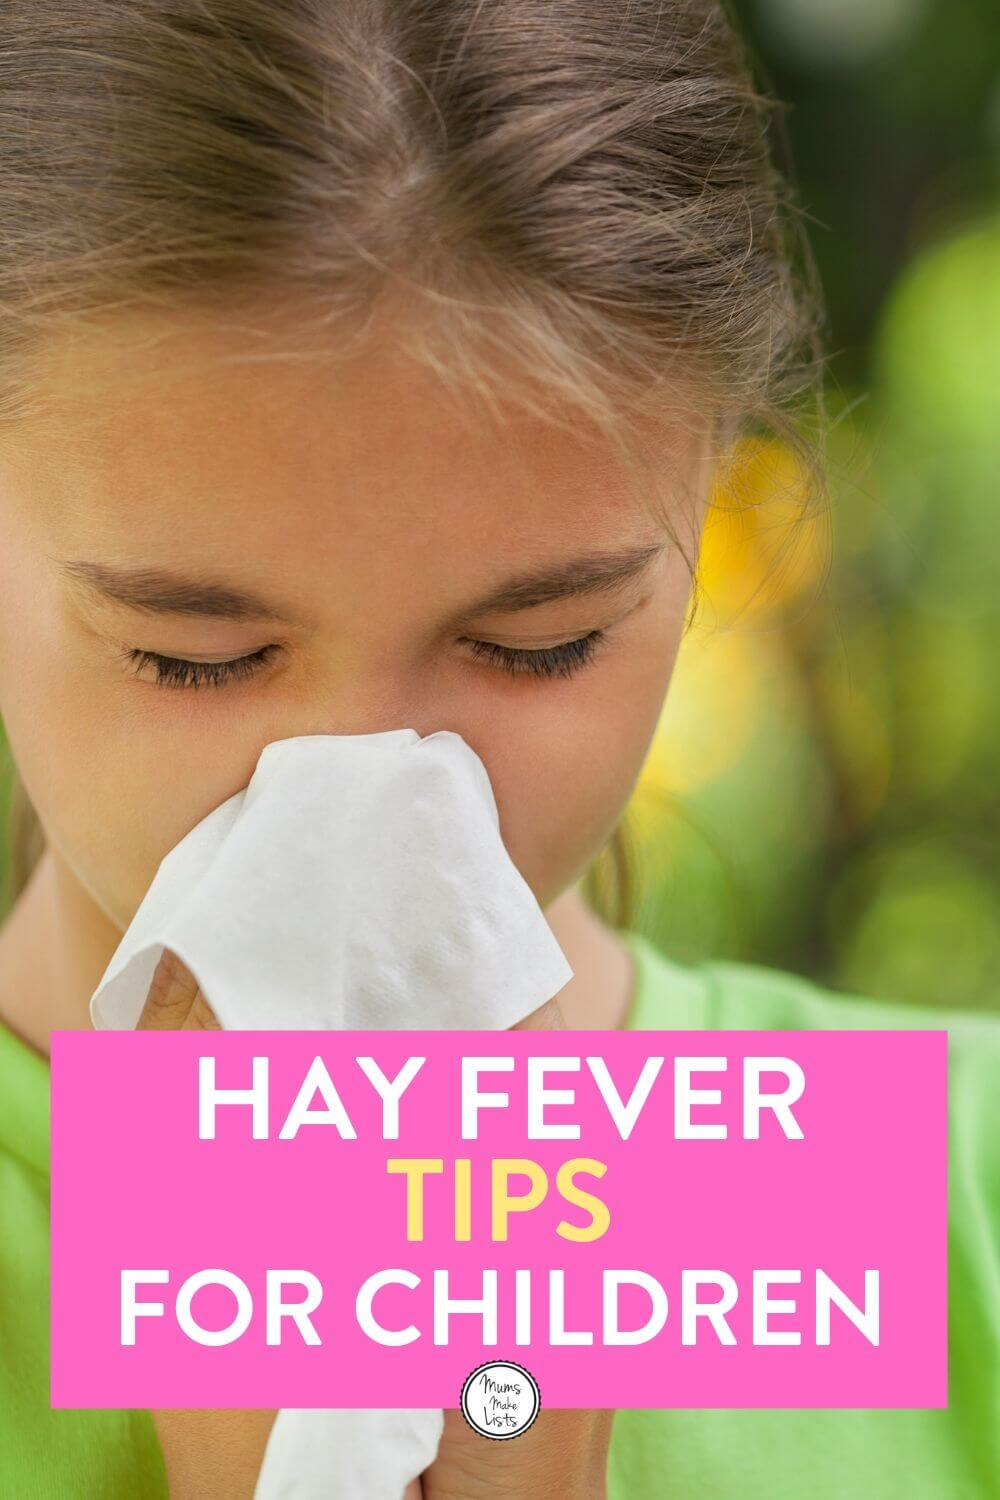 hay fever hacks, hay fever children, hay fever symptoms, tips for hay fever, hay fever in children, hay fever in kids